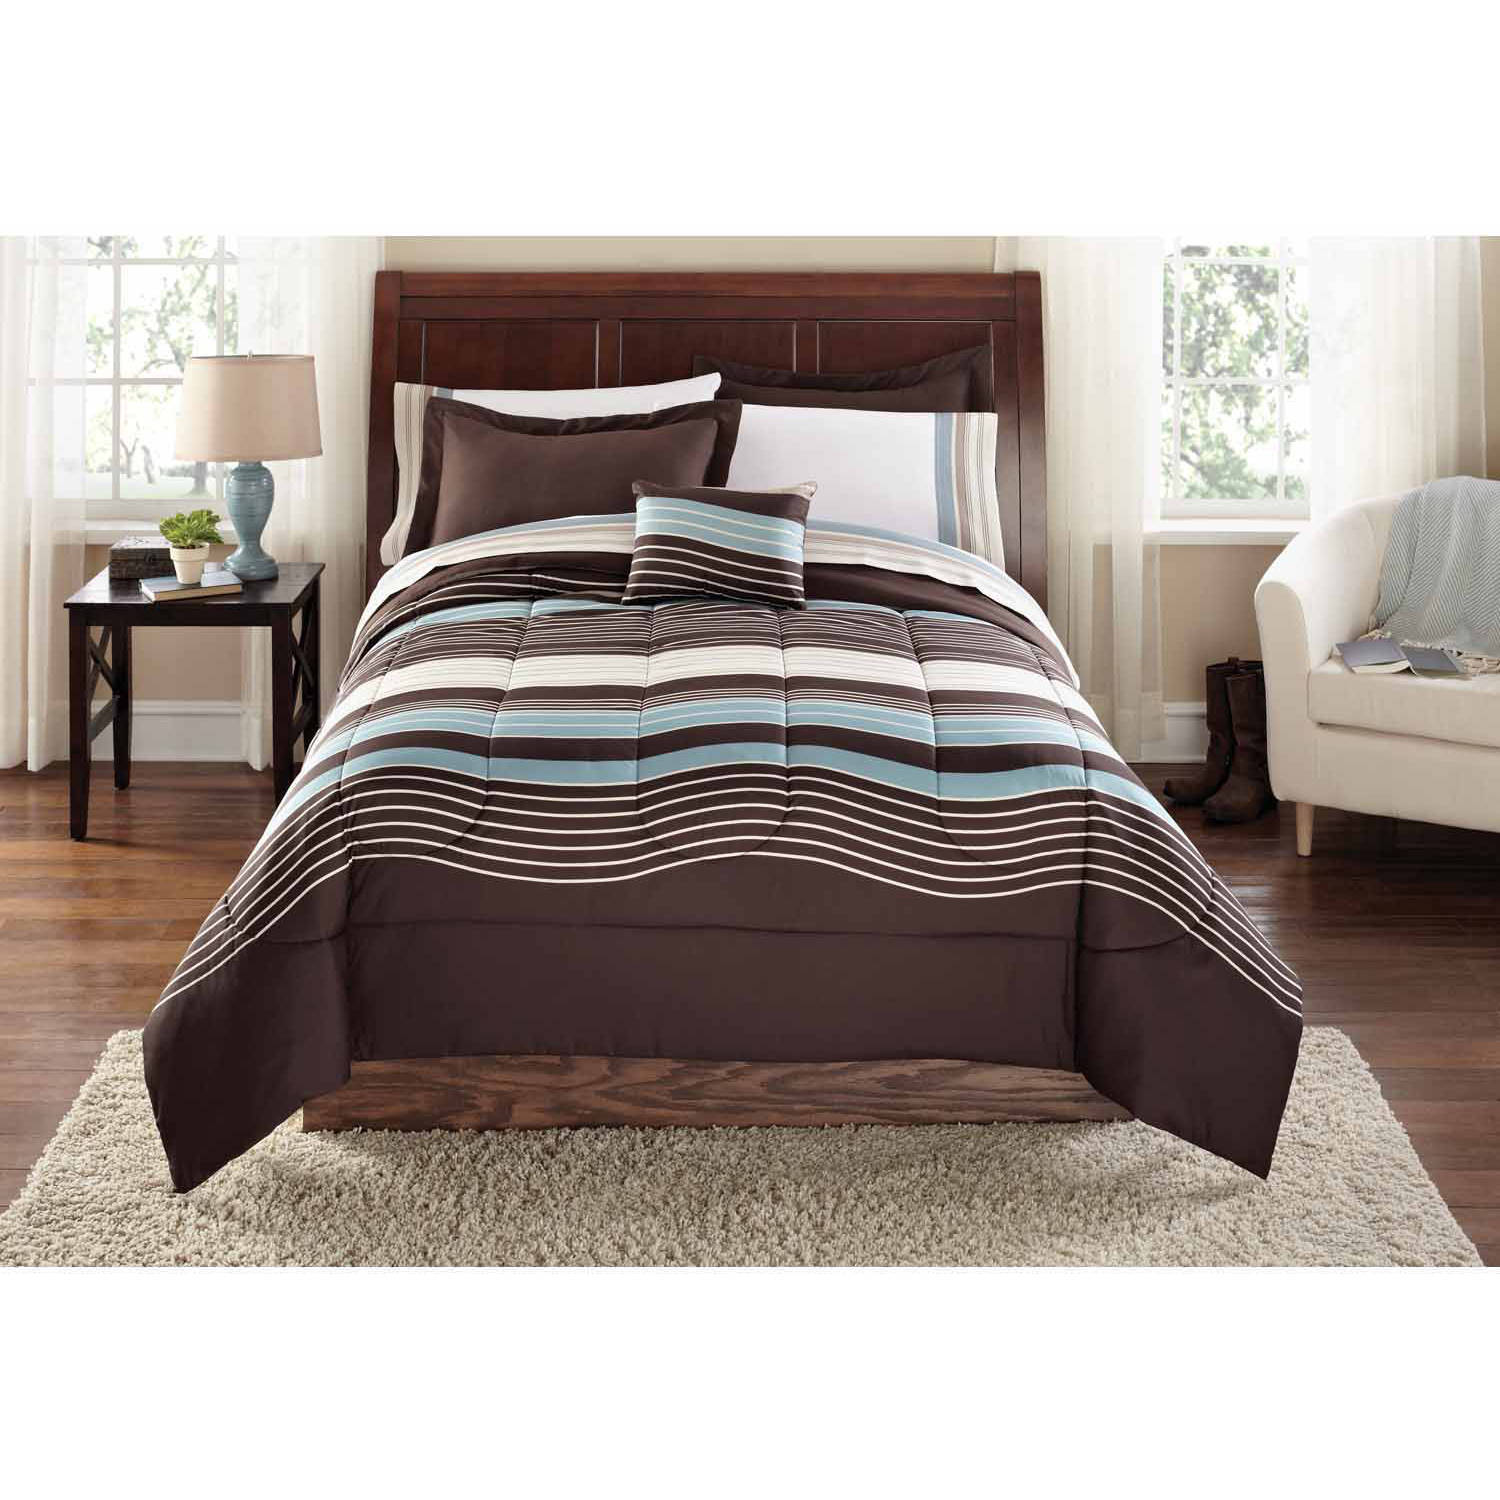 Mainstays Urban Stripe Bed in a Bag Coordinated Bedding Set